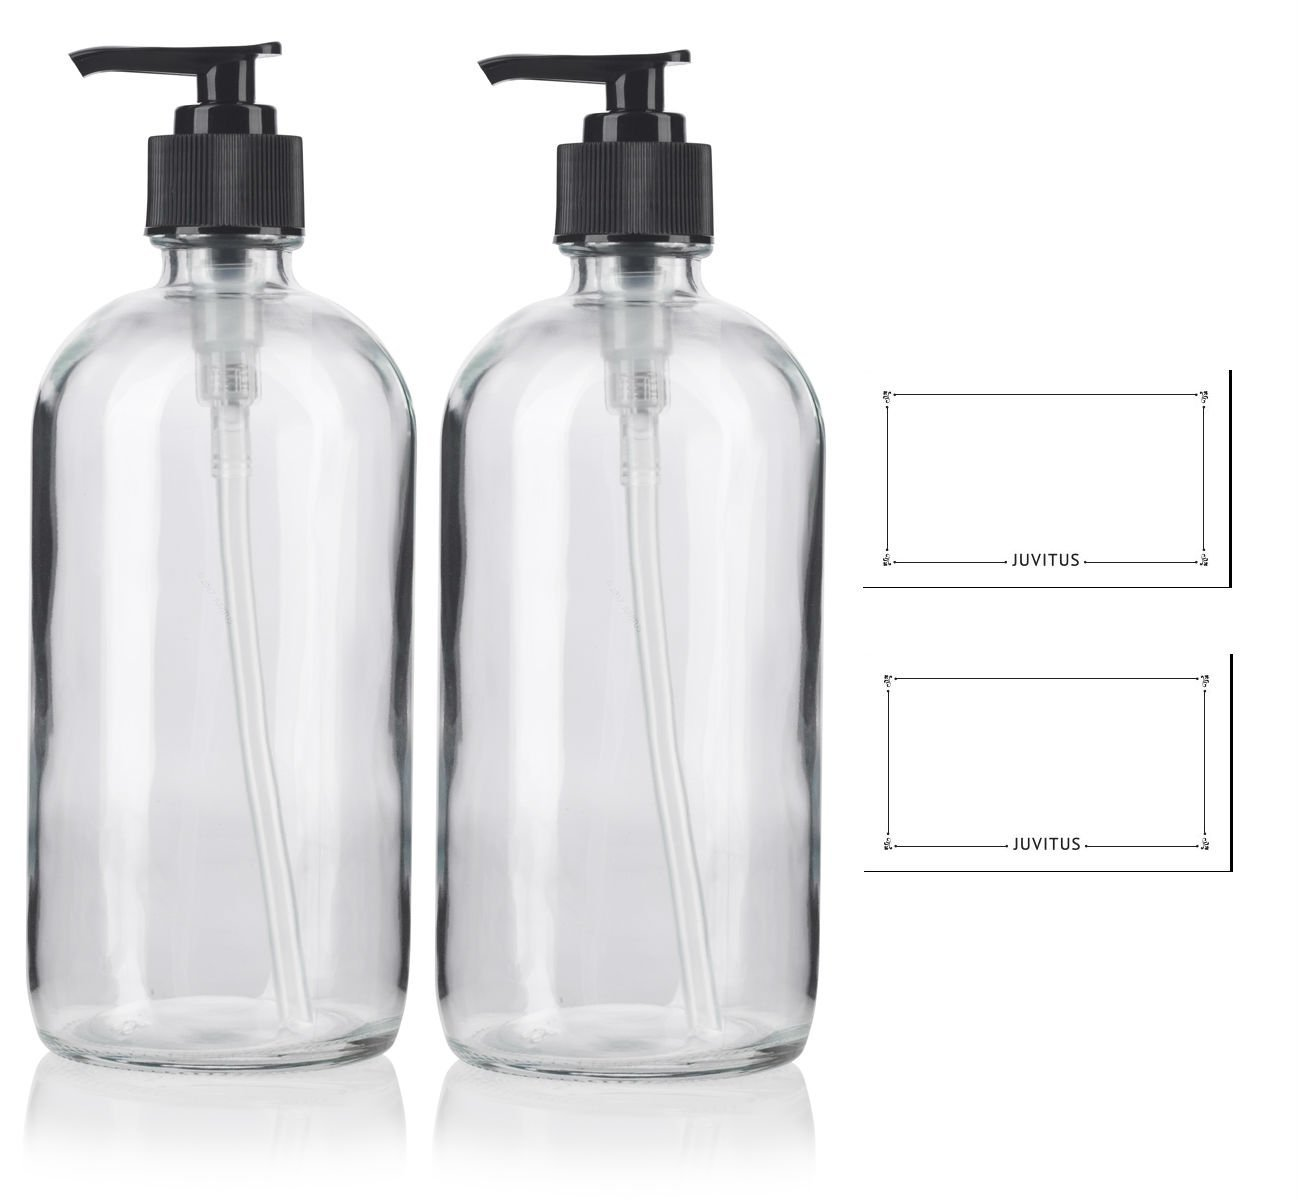 8 oz Clear Boston Round Thick Plated Glass Bottle with Black Lotion Pump (2 Pack)+ Labels - Perfect for Home, Cleaning, Cooking, Essential Oils, DIY, Gifts